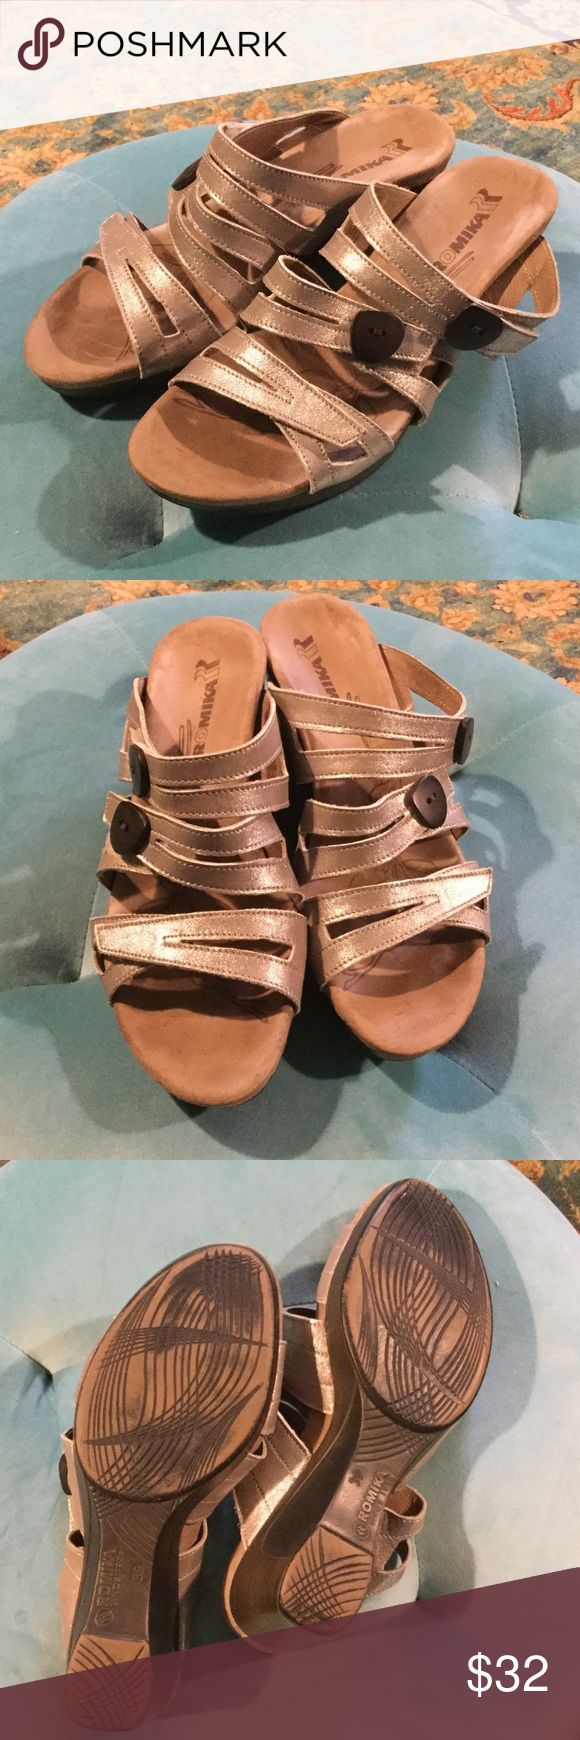 """Romika Waikiki Silver Leather Sandal Beautiful and extremely comfortable Romika leather sandals. All three straps on top of the foot are adjustable by strong Velcro, but it doesn't look like Velcro all. Suede footbeds are pillow soft. I only wore them 2 - 3 times because I don't normally wear heels. Heel is 2"""". These are a European size 39, but because of the Adjustable straps they fit me fine and I usually wear a 38. Feel free to make an offer and thanks for looking! Romika Shoes Sandals"""